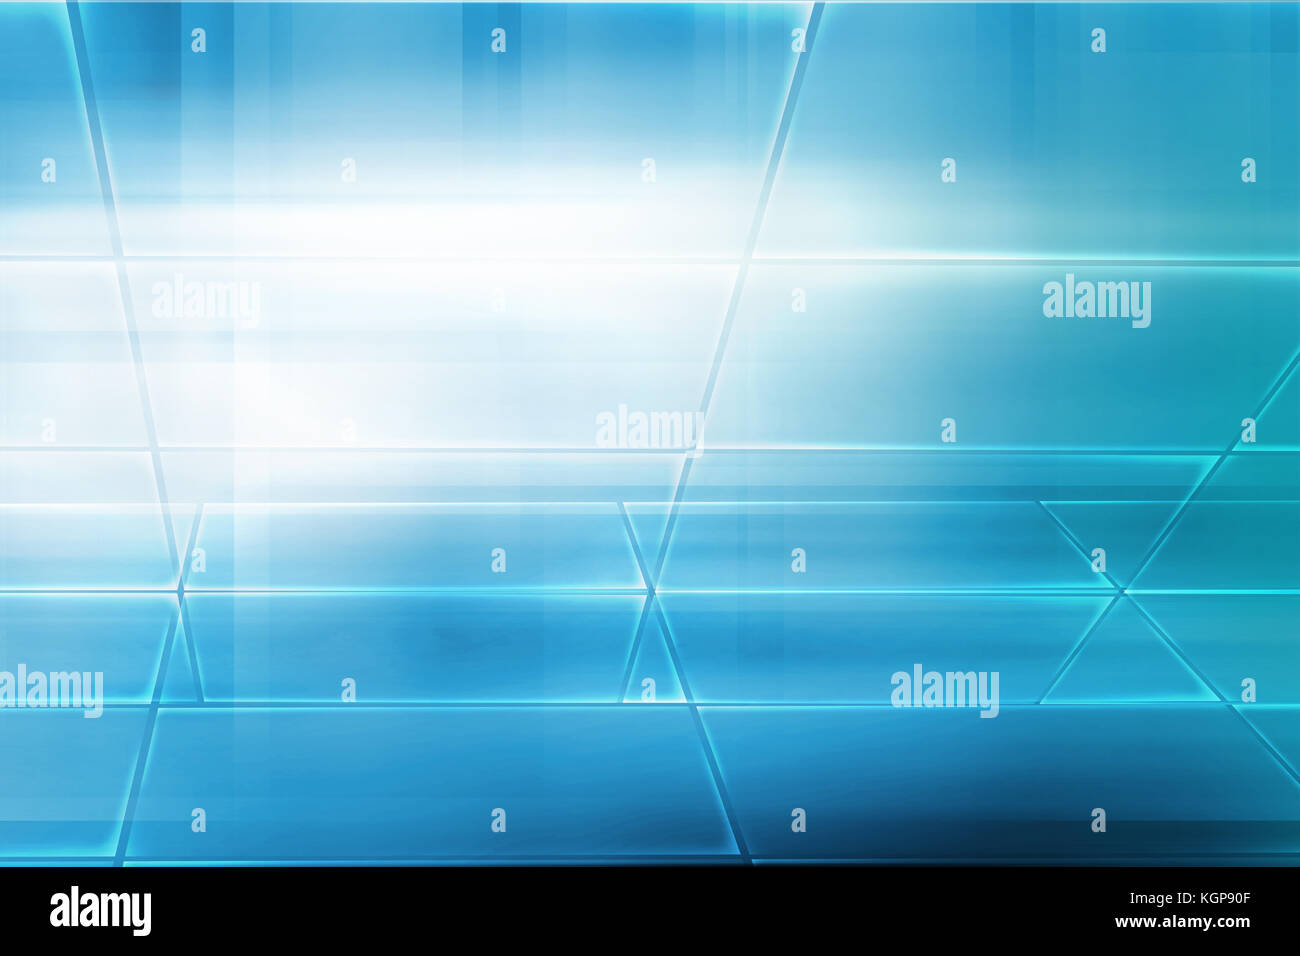 graphical abstract technology background high tech blue theme stock